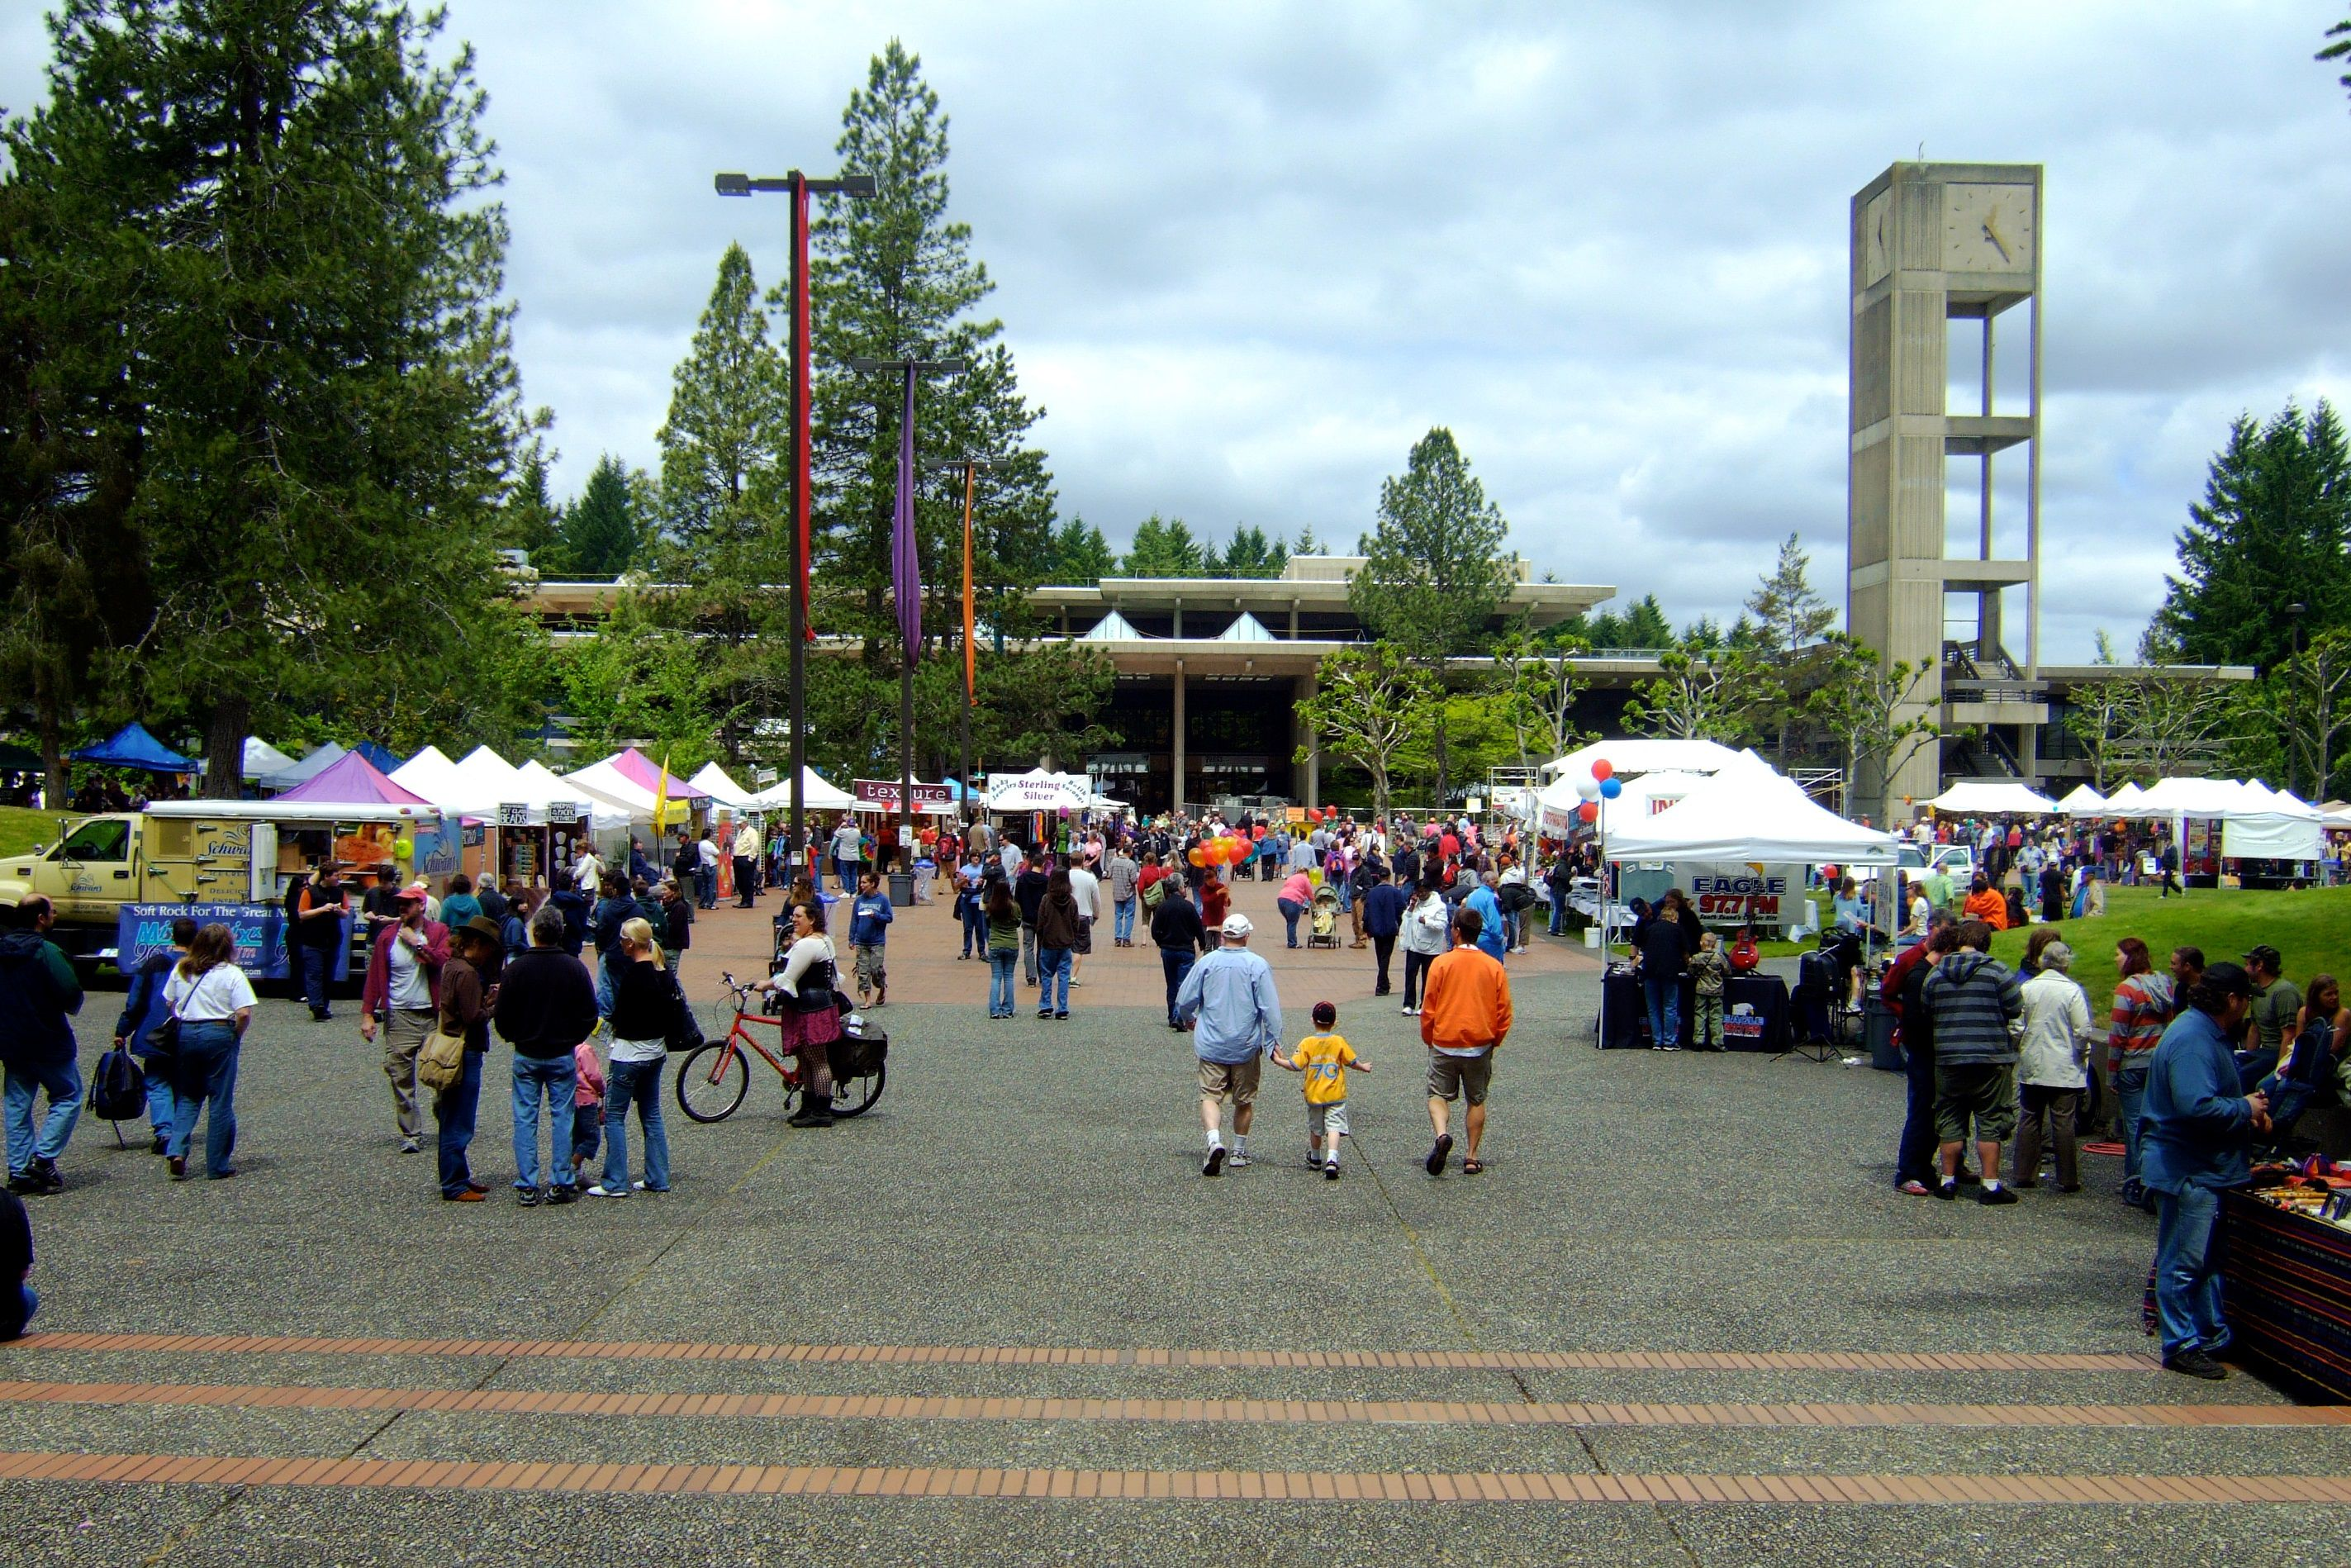 A Festival at The Evergreen State College